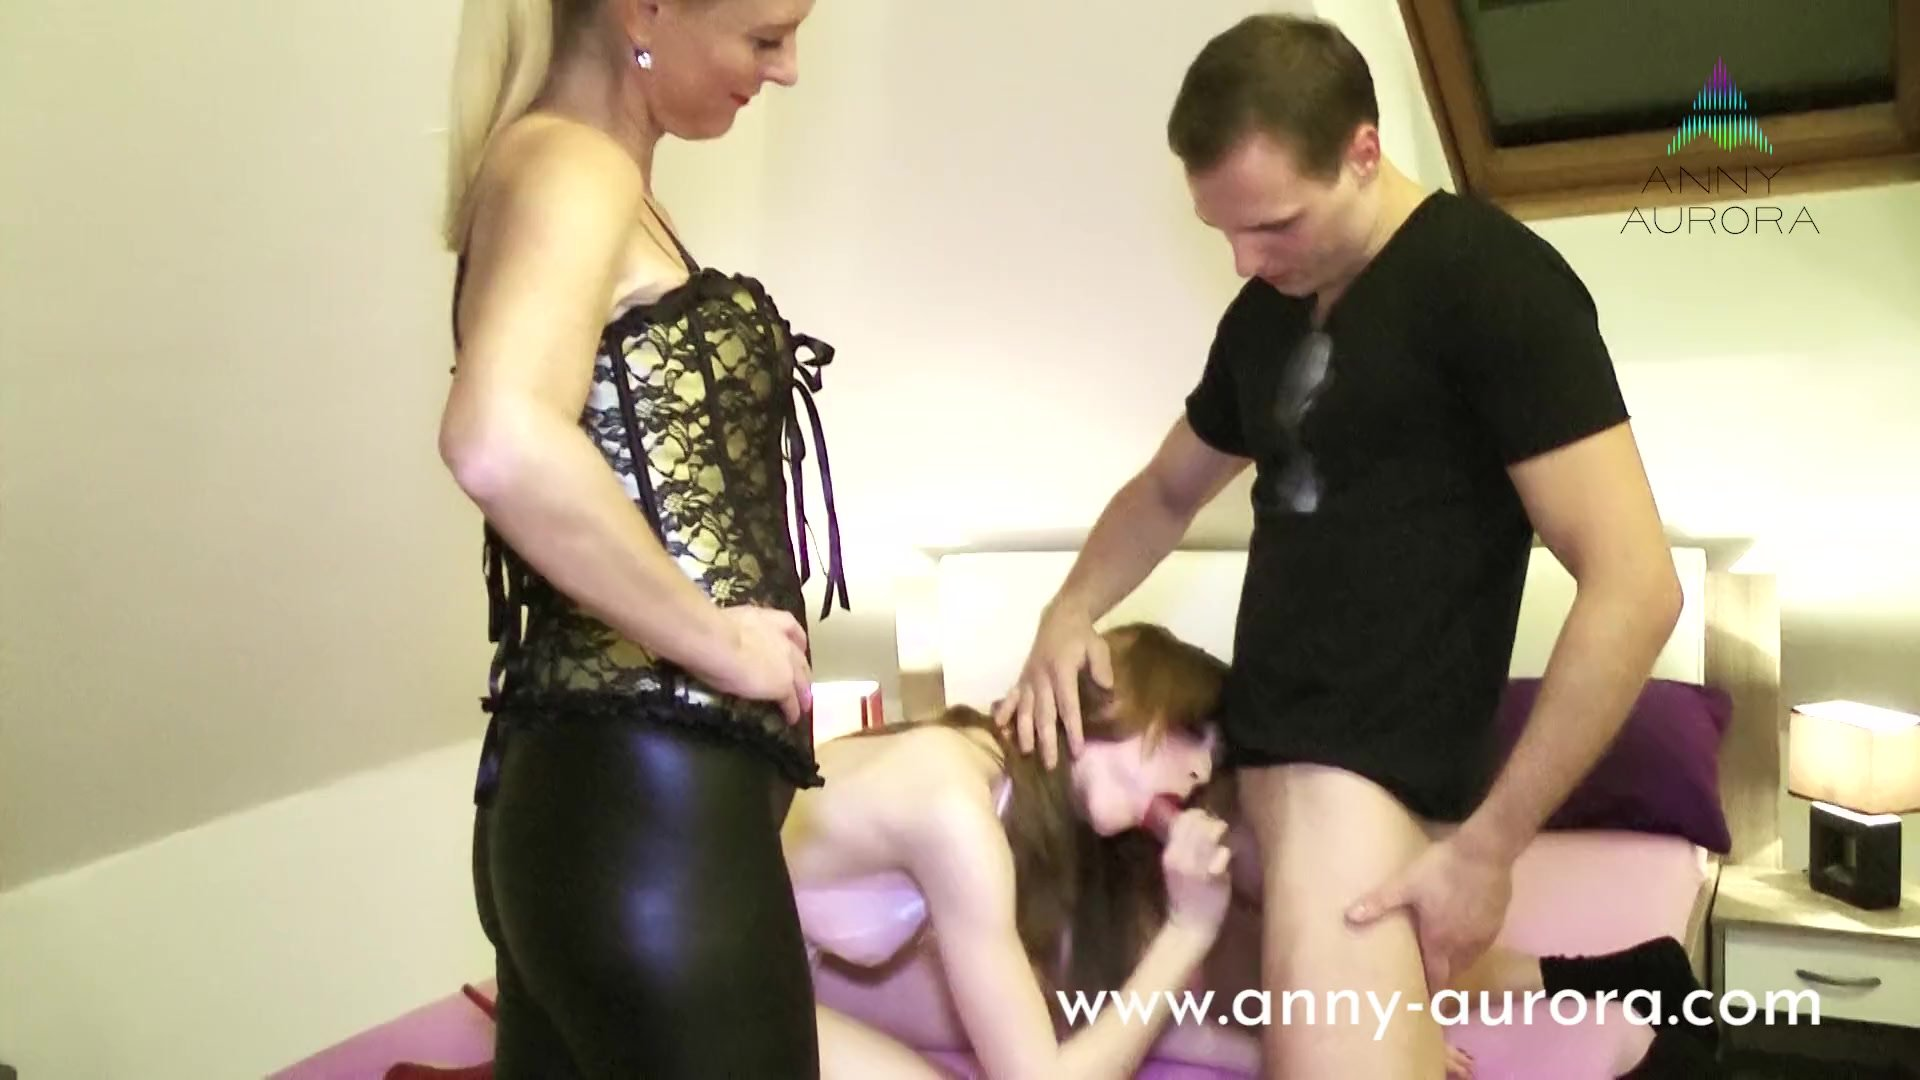 Threesome Porncasting with MILF Dirty Tina and Teen Anny Aurora